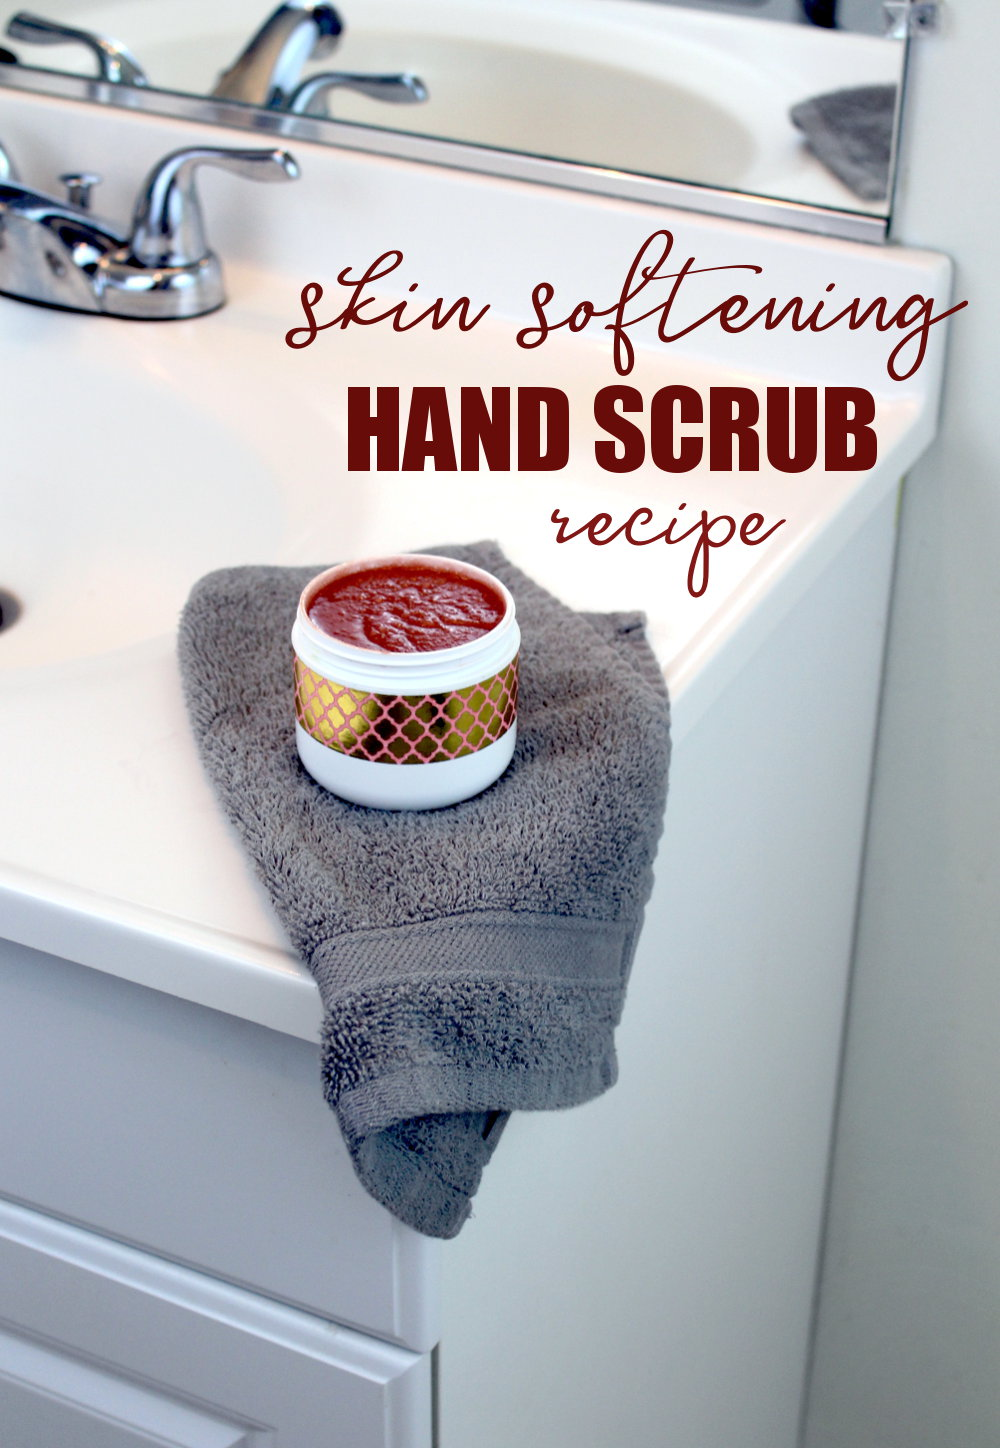 DIY Skin Softening Hand Scrub! If you hand soap is drying out your skin from repeated washing try something different! Take charge of your skin's health with this rose scented skin softening hand scrub recipe! Formulated with tamanu oil and other skin nourishing ingredients, your hands will be back to better health in no time!